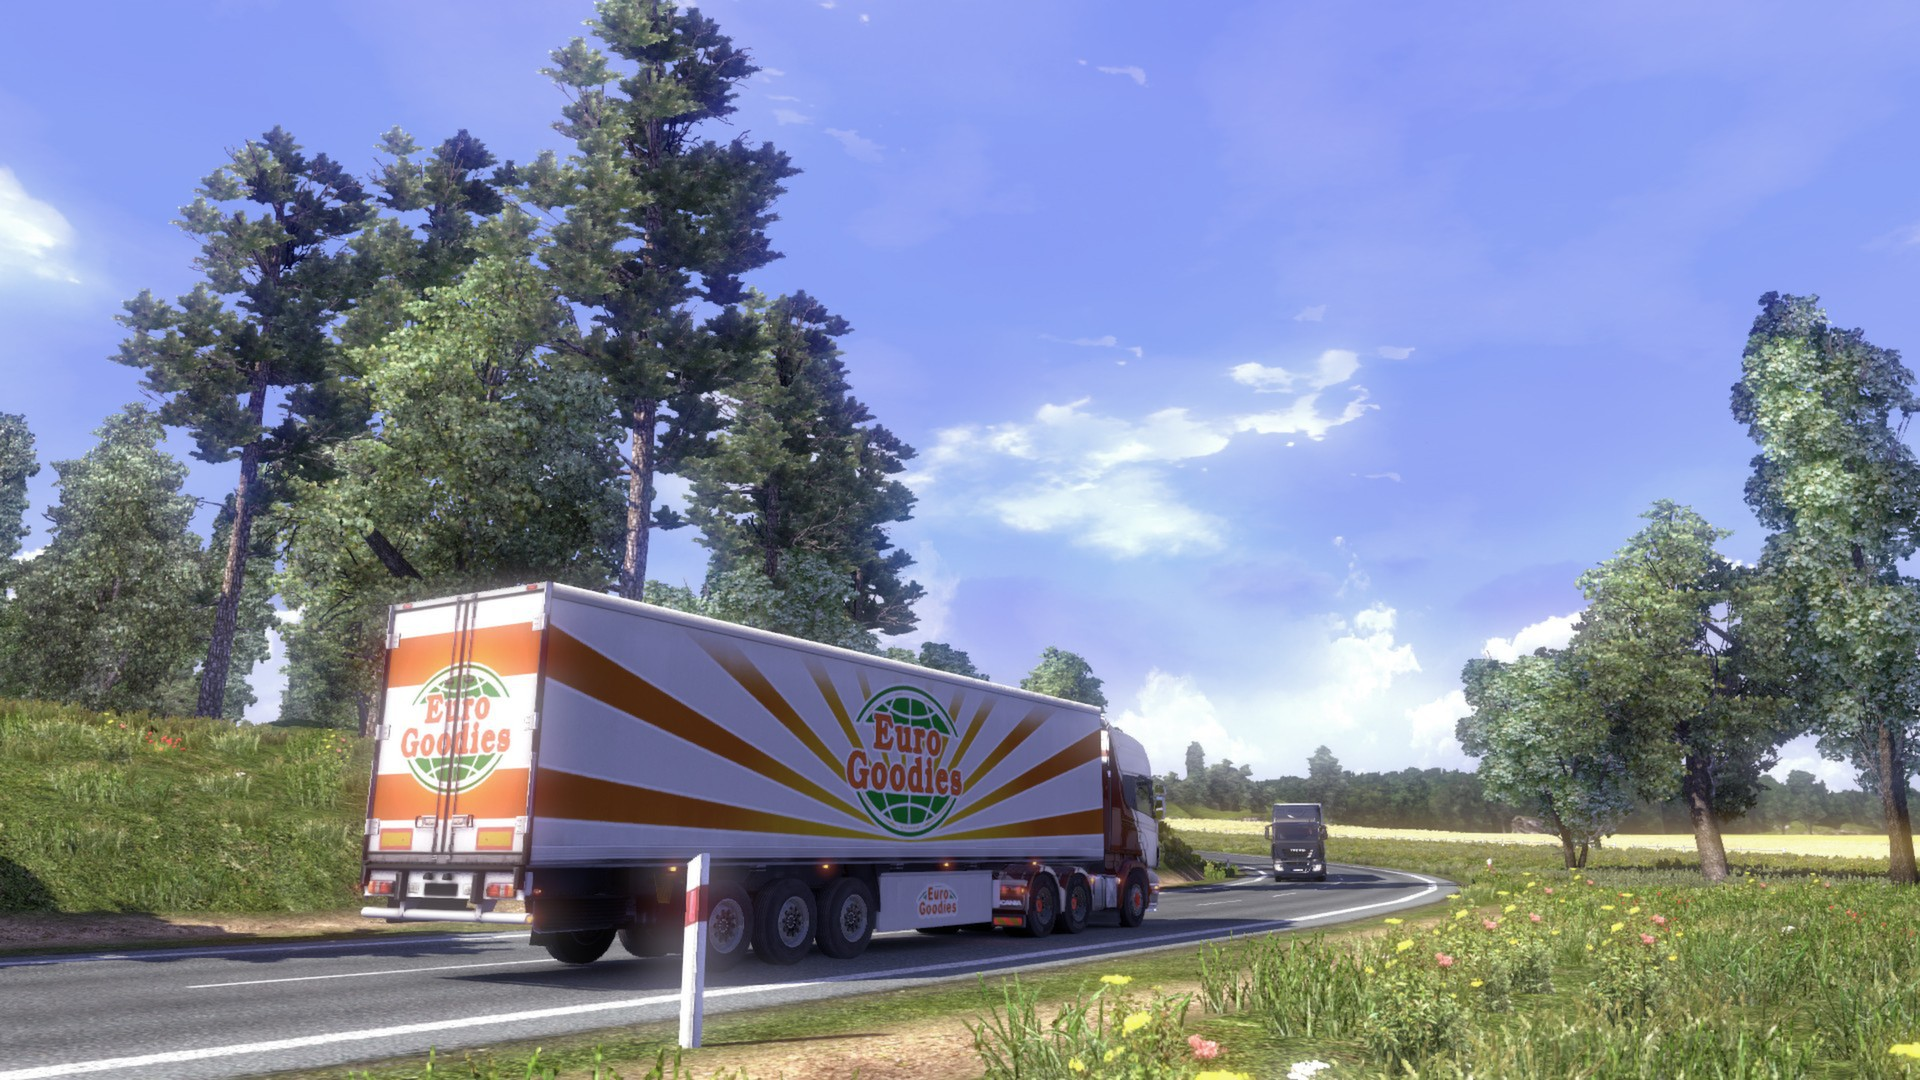 Euro Truck Simulator 2 (Steam Key / Region Free)